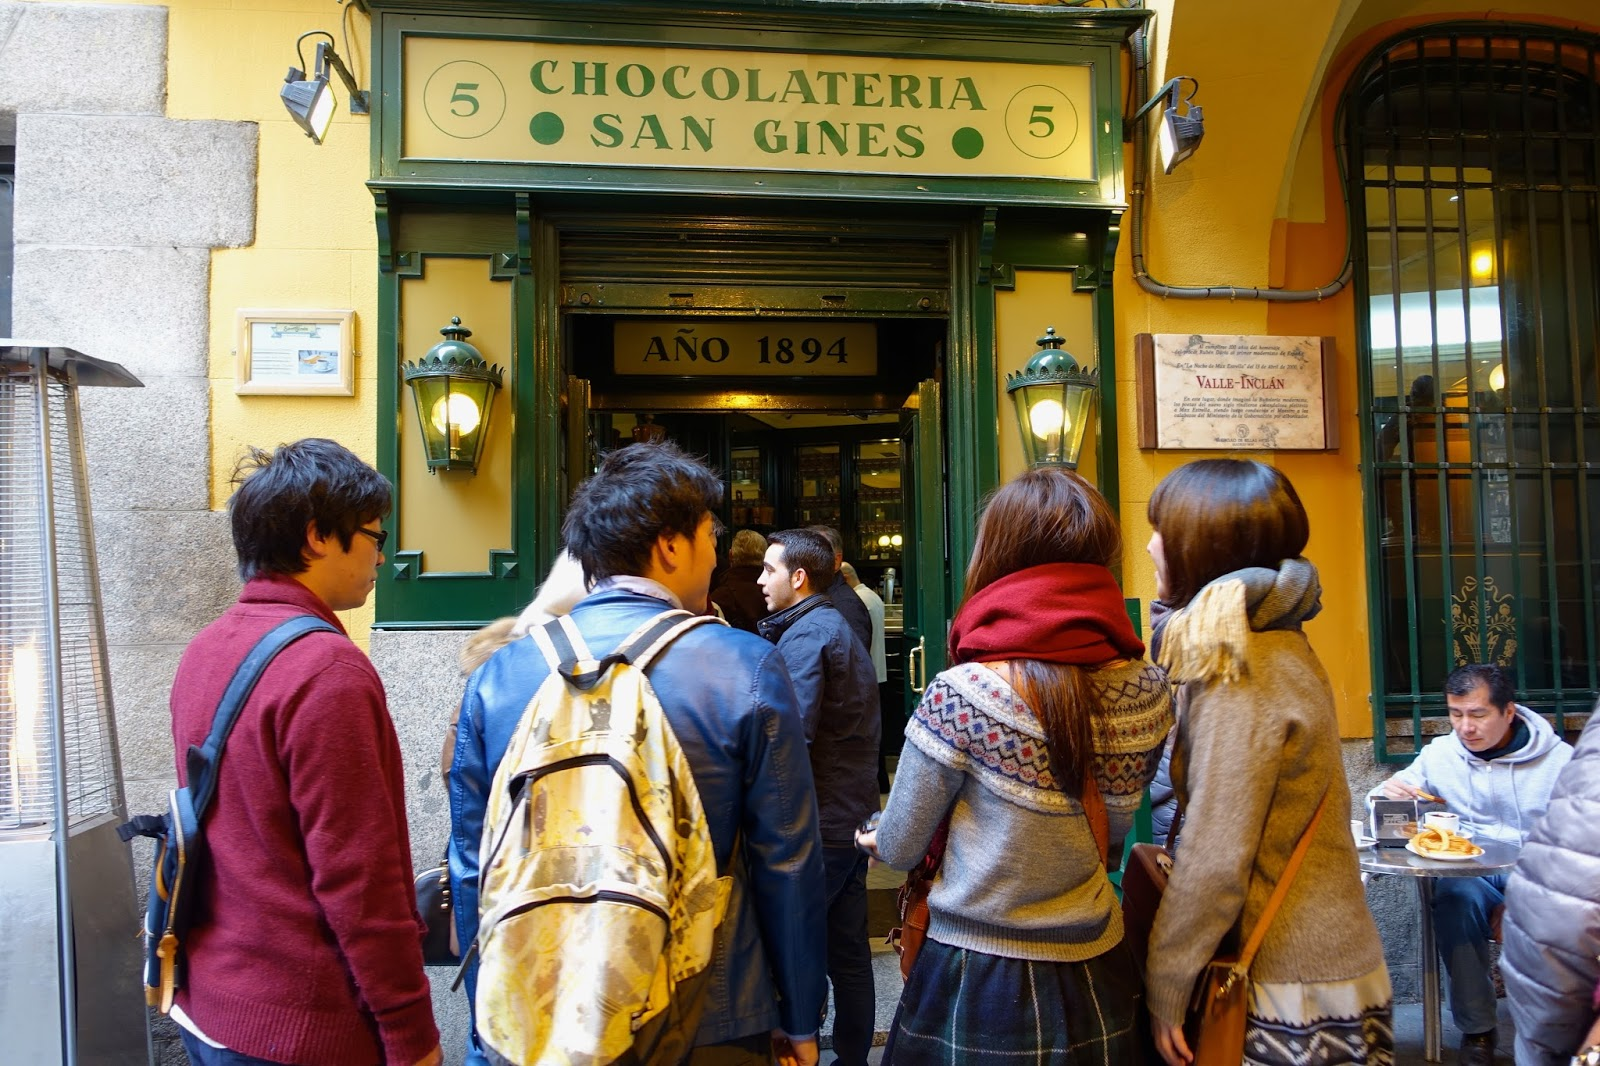 Jin Loves To Eat Chocolateria San Gines